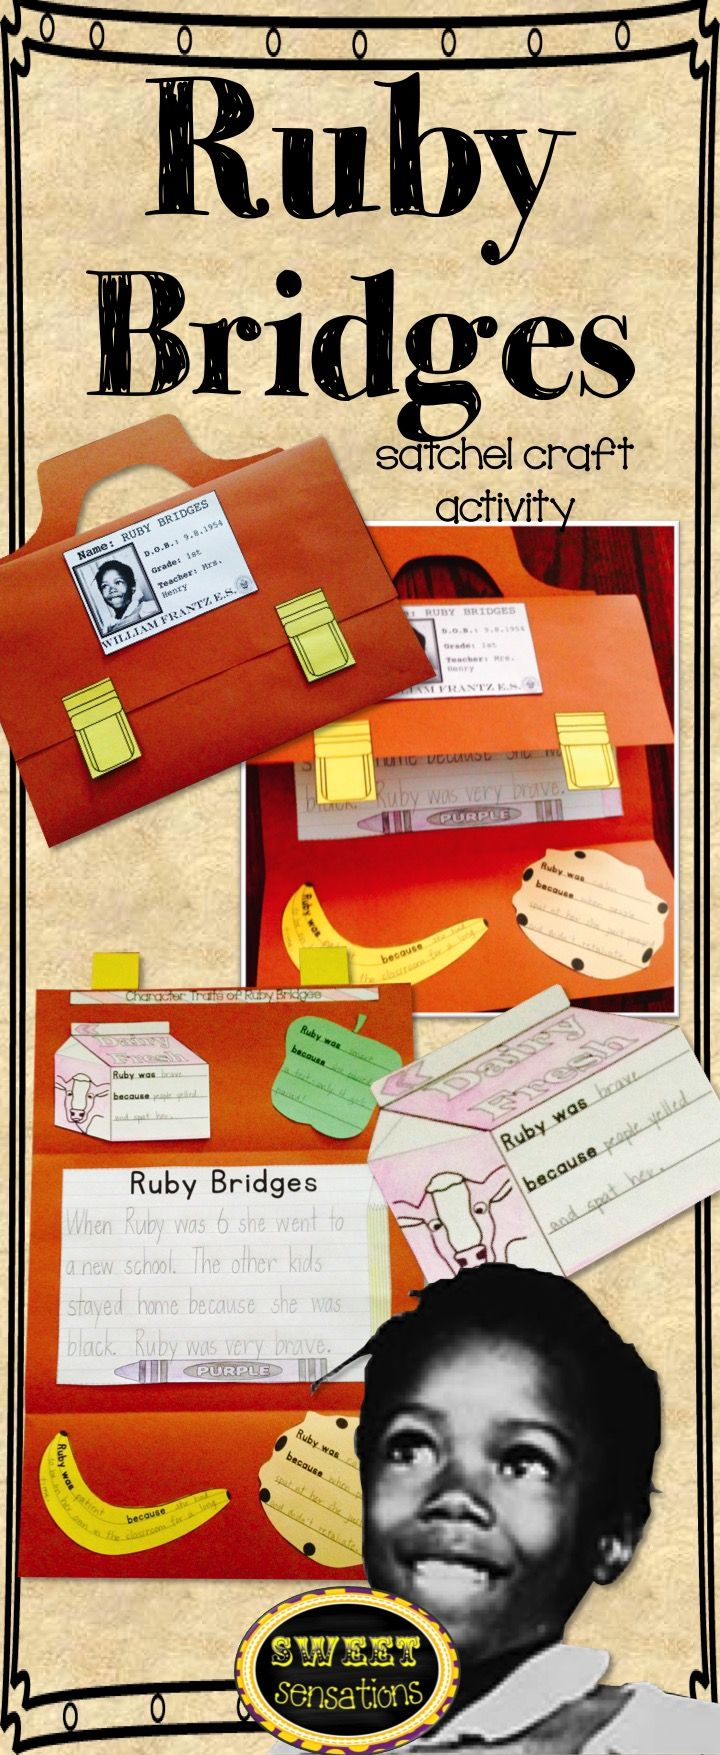 ruby bridges essay contest In spring 1960, ruby bridges was one of several african-americans in new orleans to take a test to determine which children would be the first to attend integrated schools.